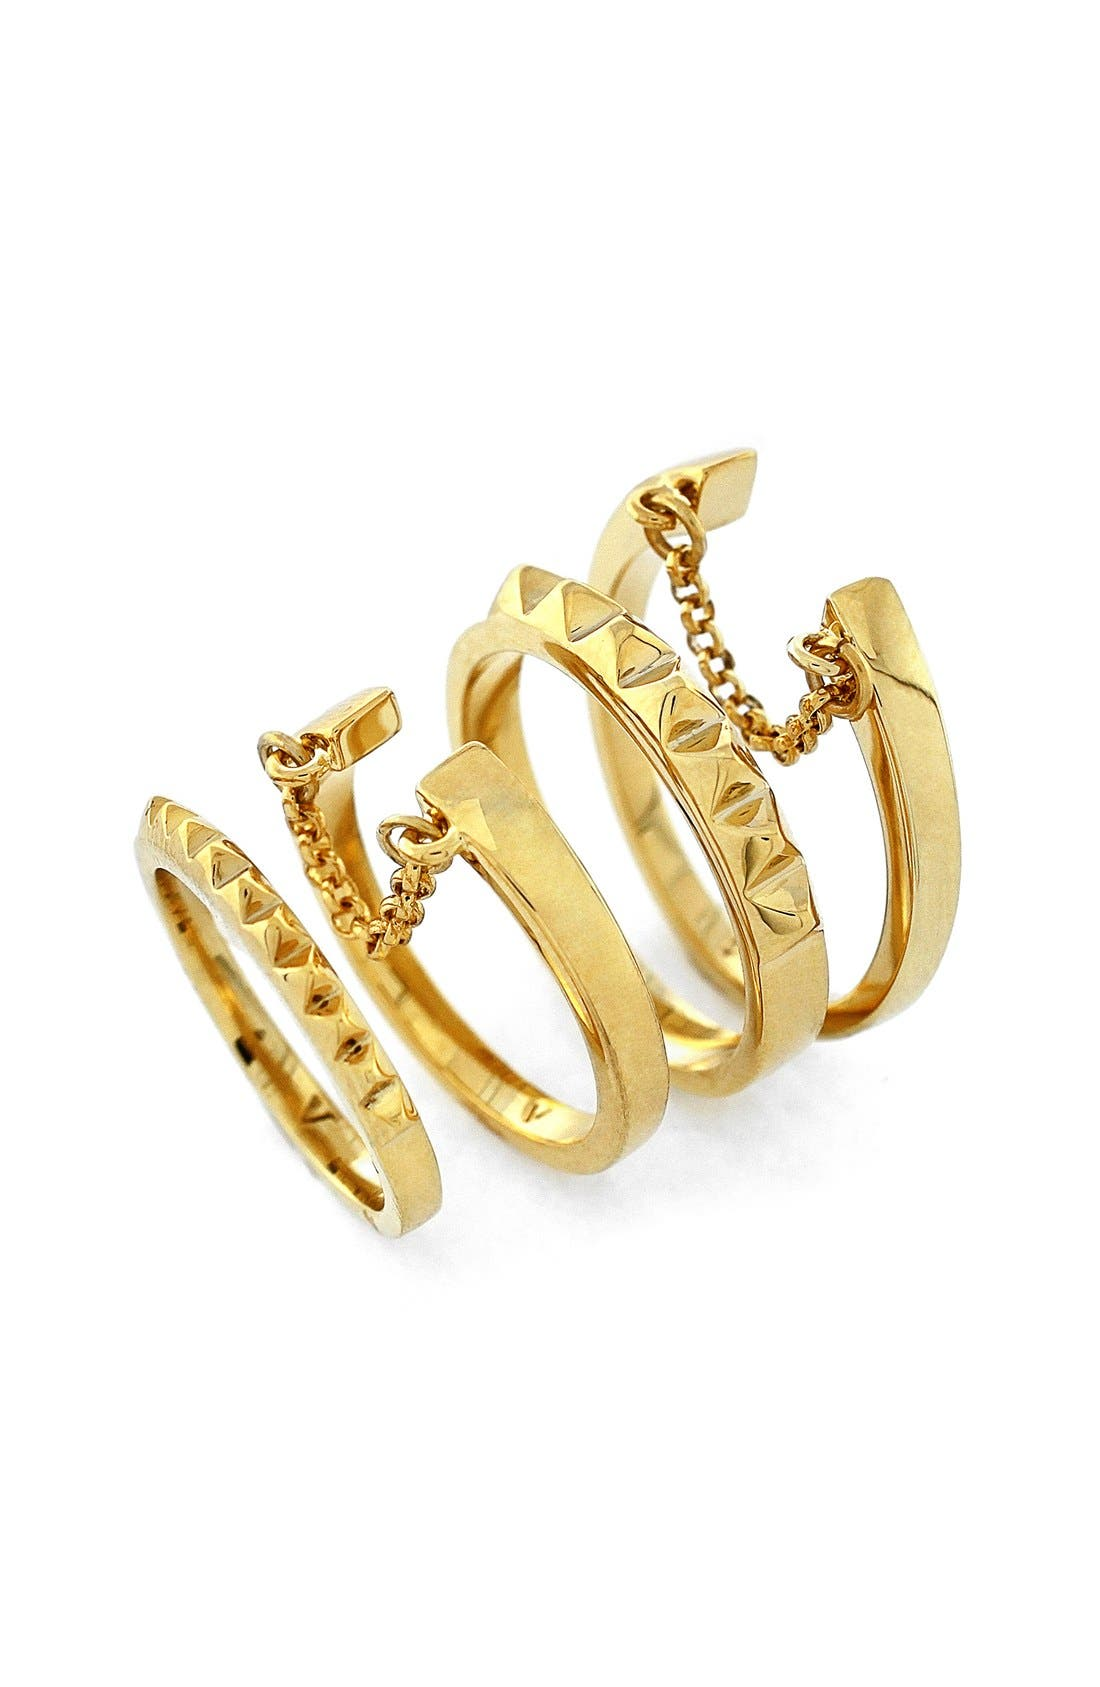 Main Image - Vince Camuto 'Super Fine' Band Rings (Set of 4)